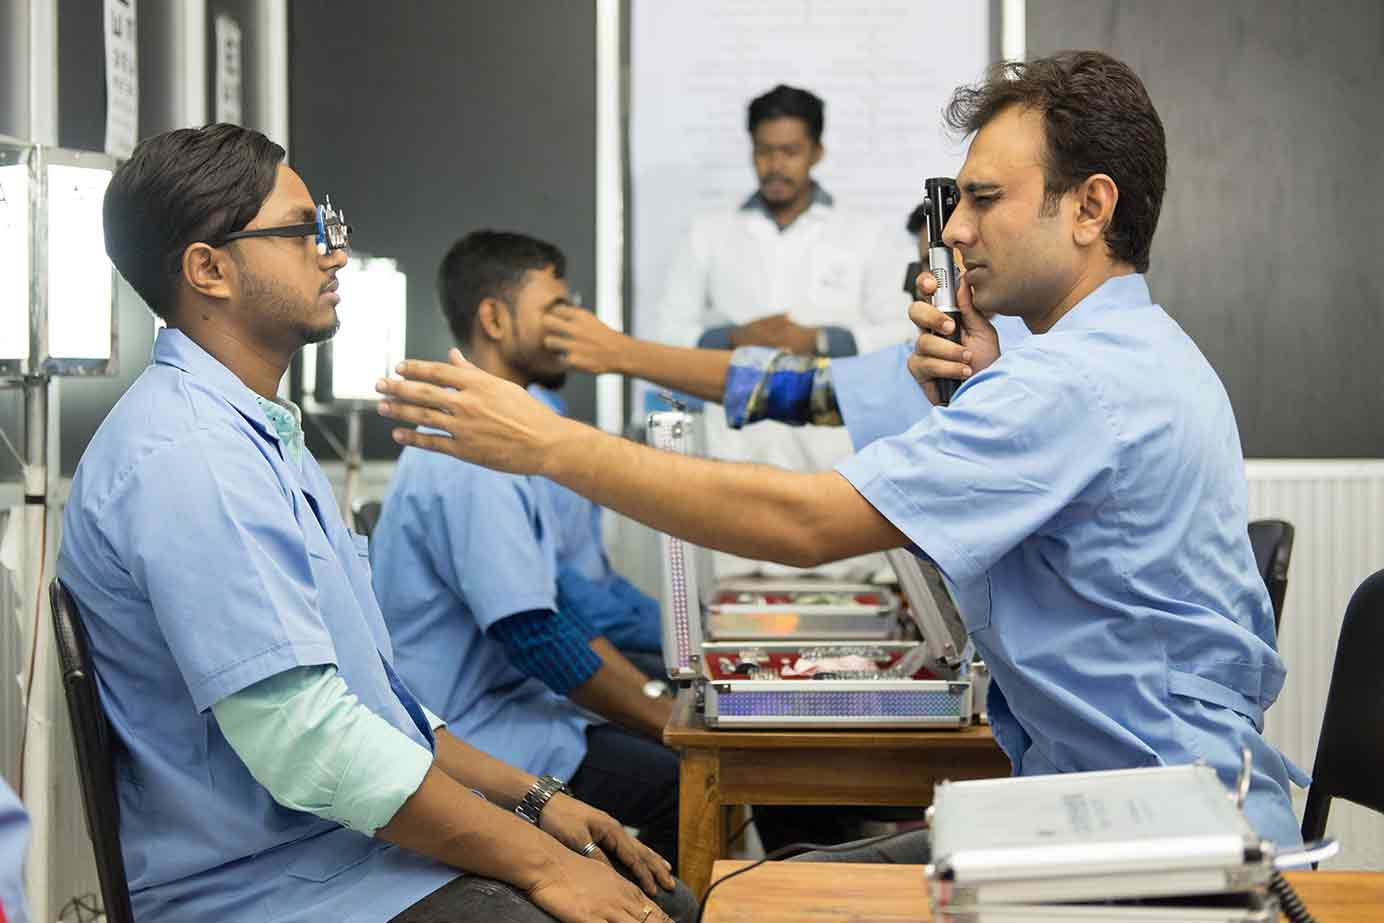 Promoting affordable vision correction services to rural populations in Bangladesh